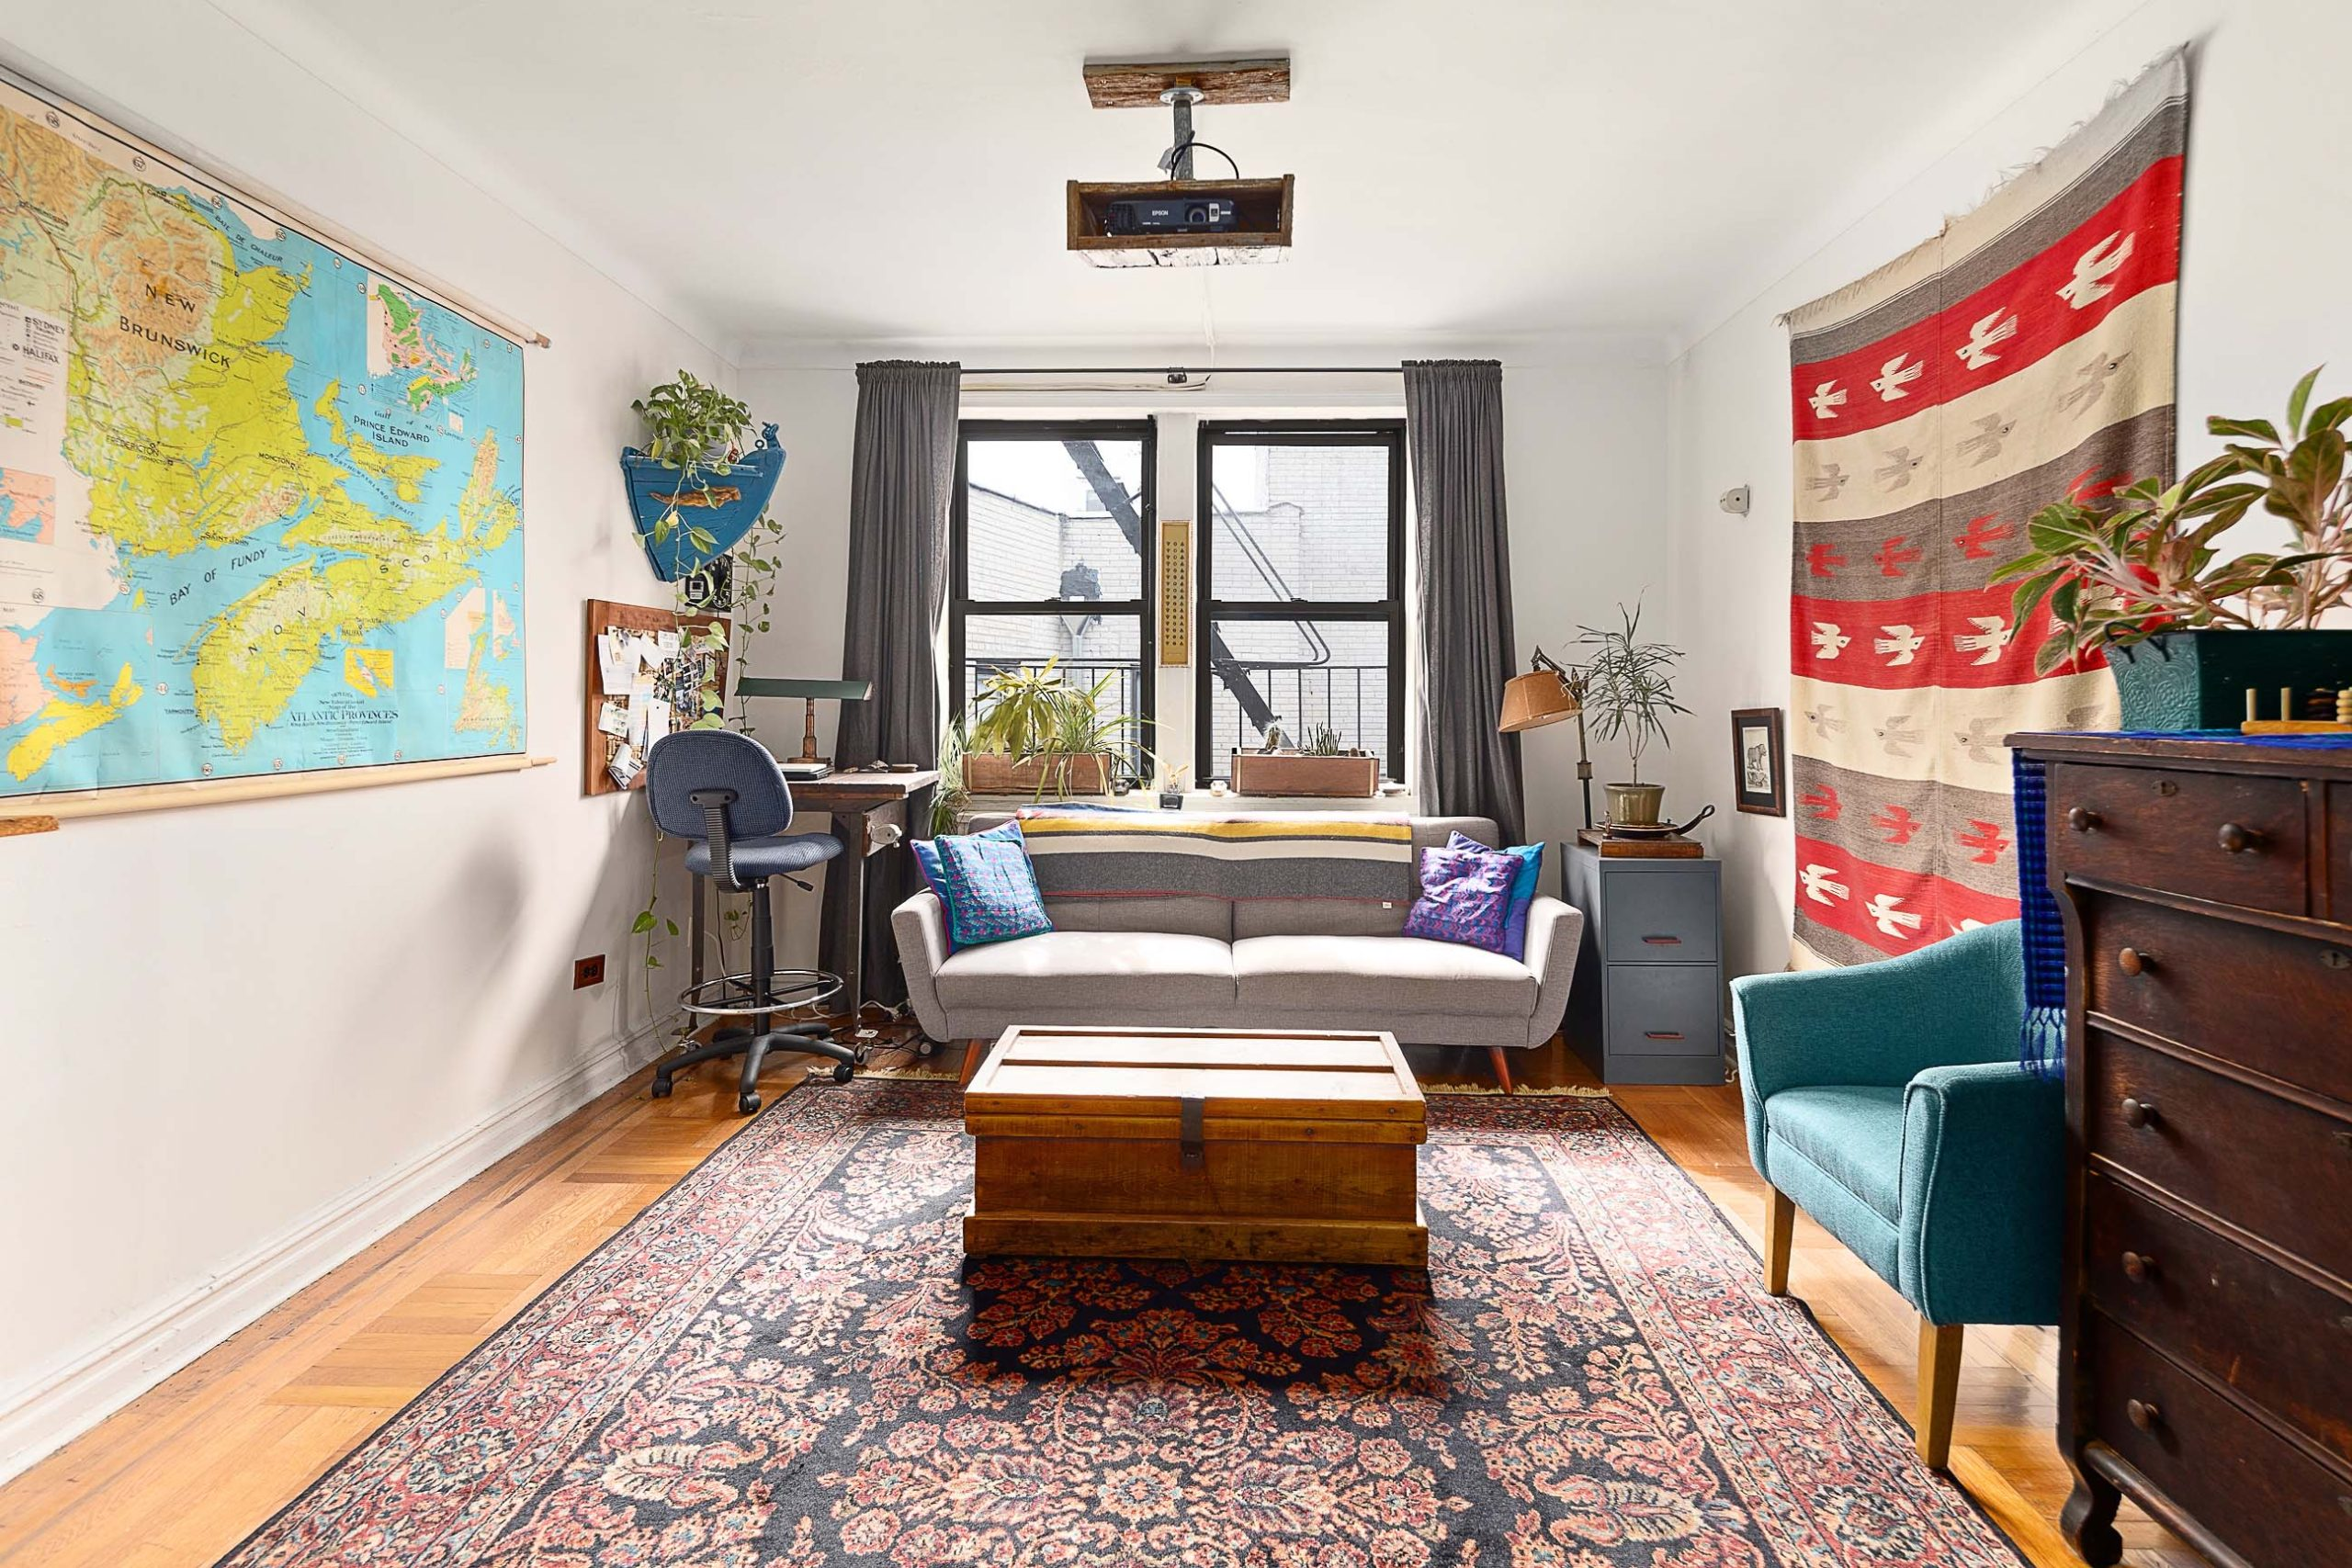 RENTED: 221 East 18th St - Prospect Park South